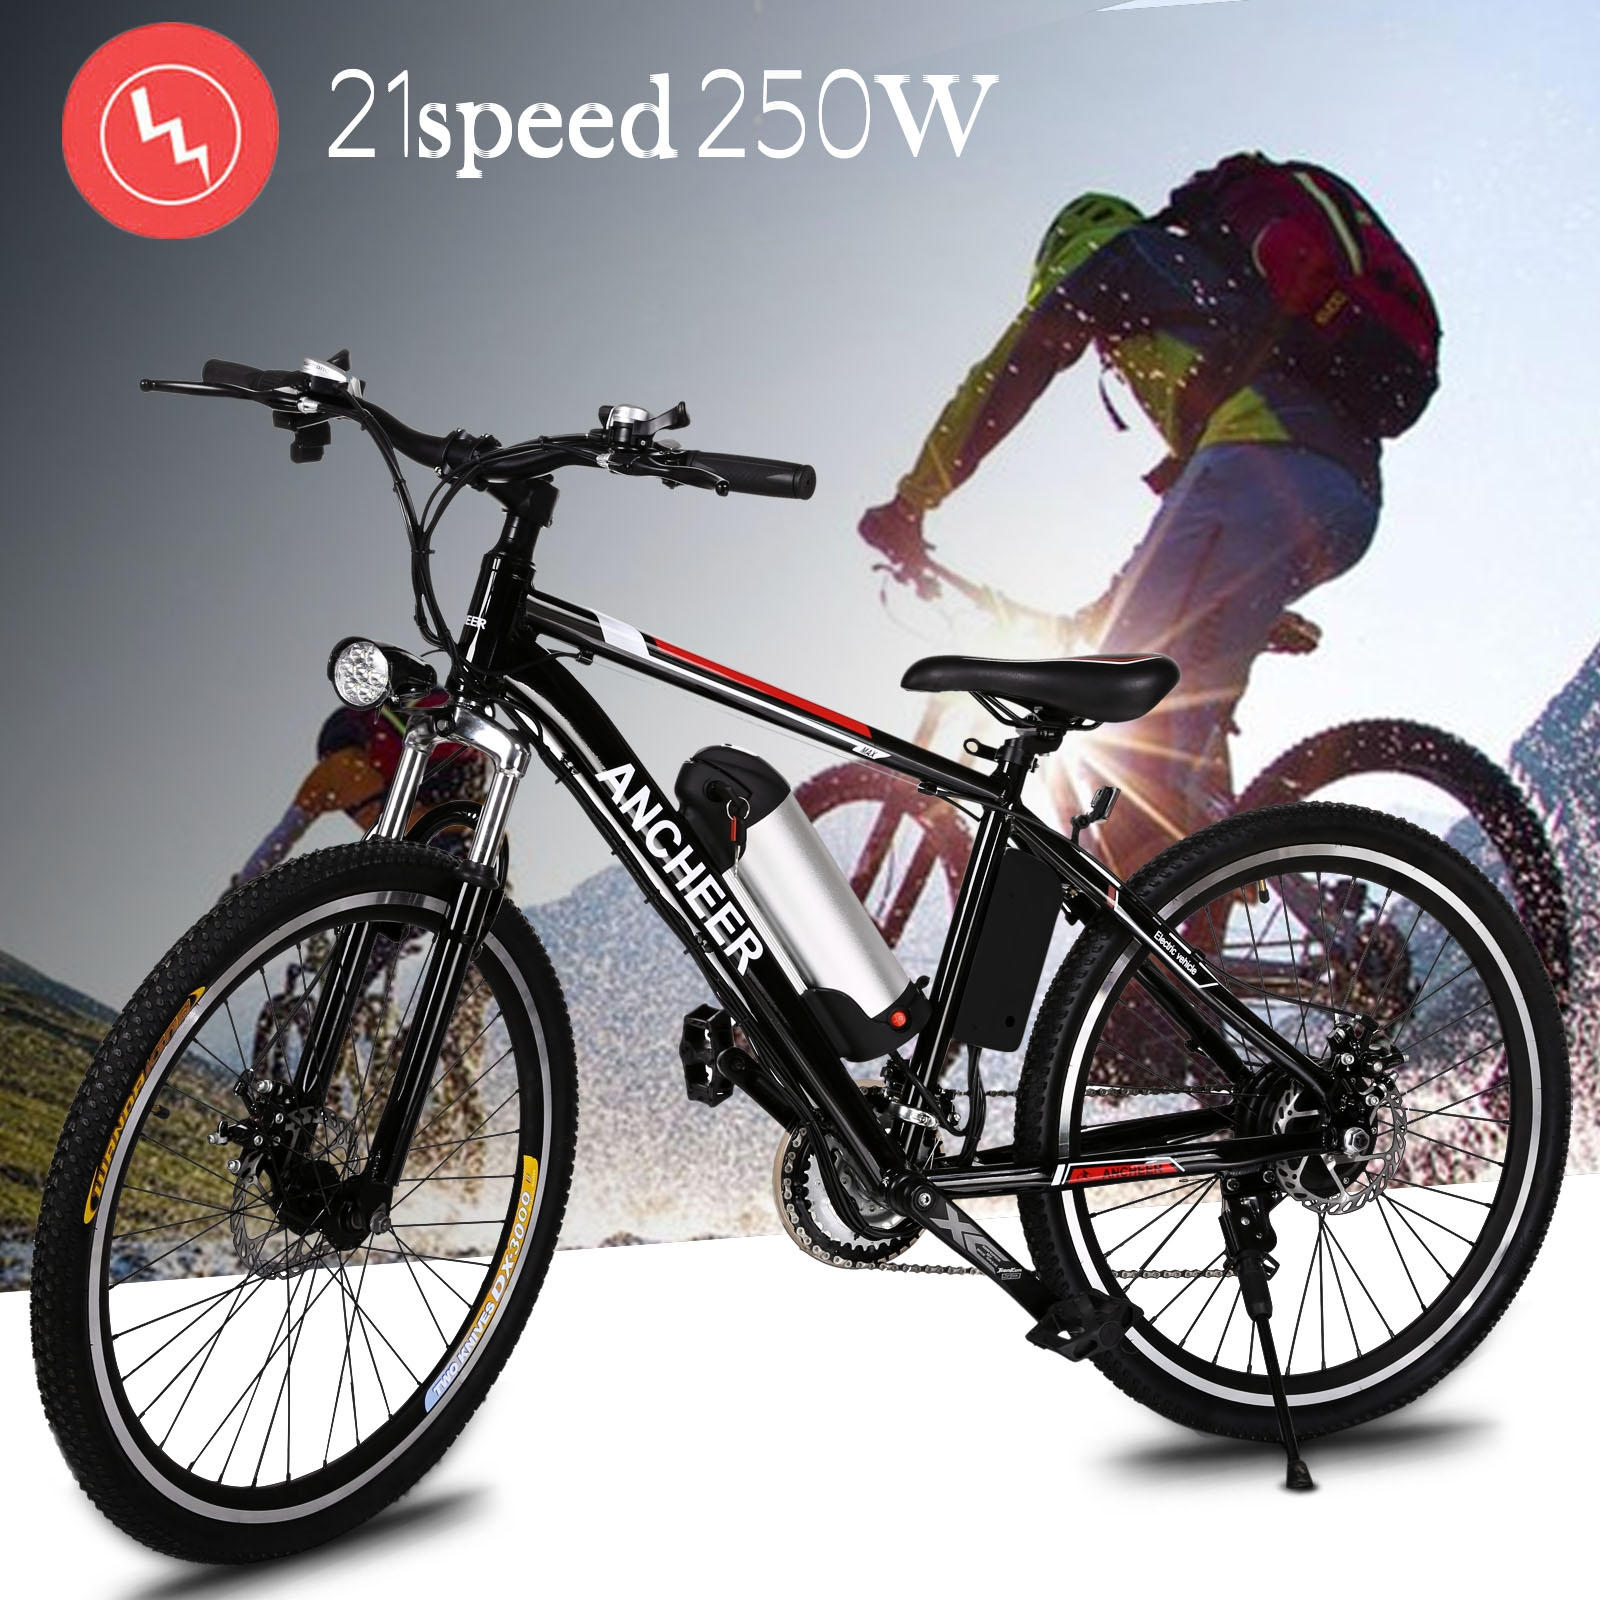 US Warehouse Shipping! 21-speed Men 250W Electric Mountain Bike Cycling Bicycle E bike Black BTC